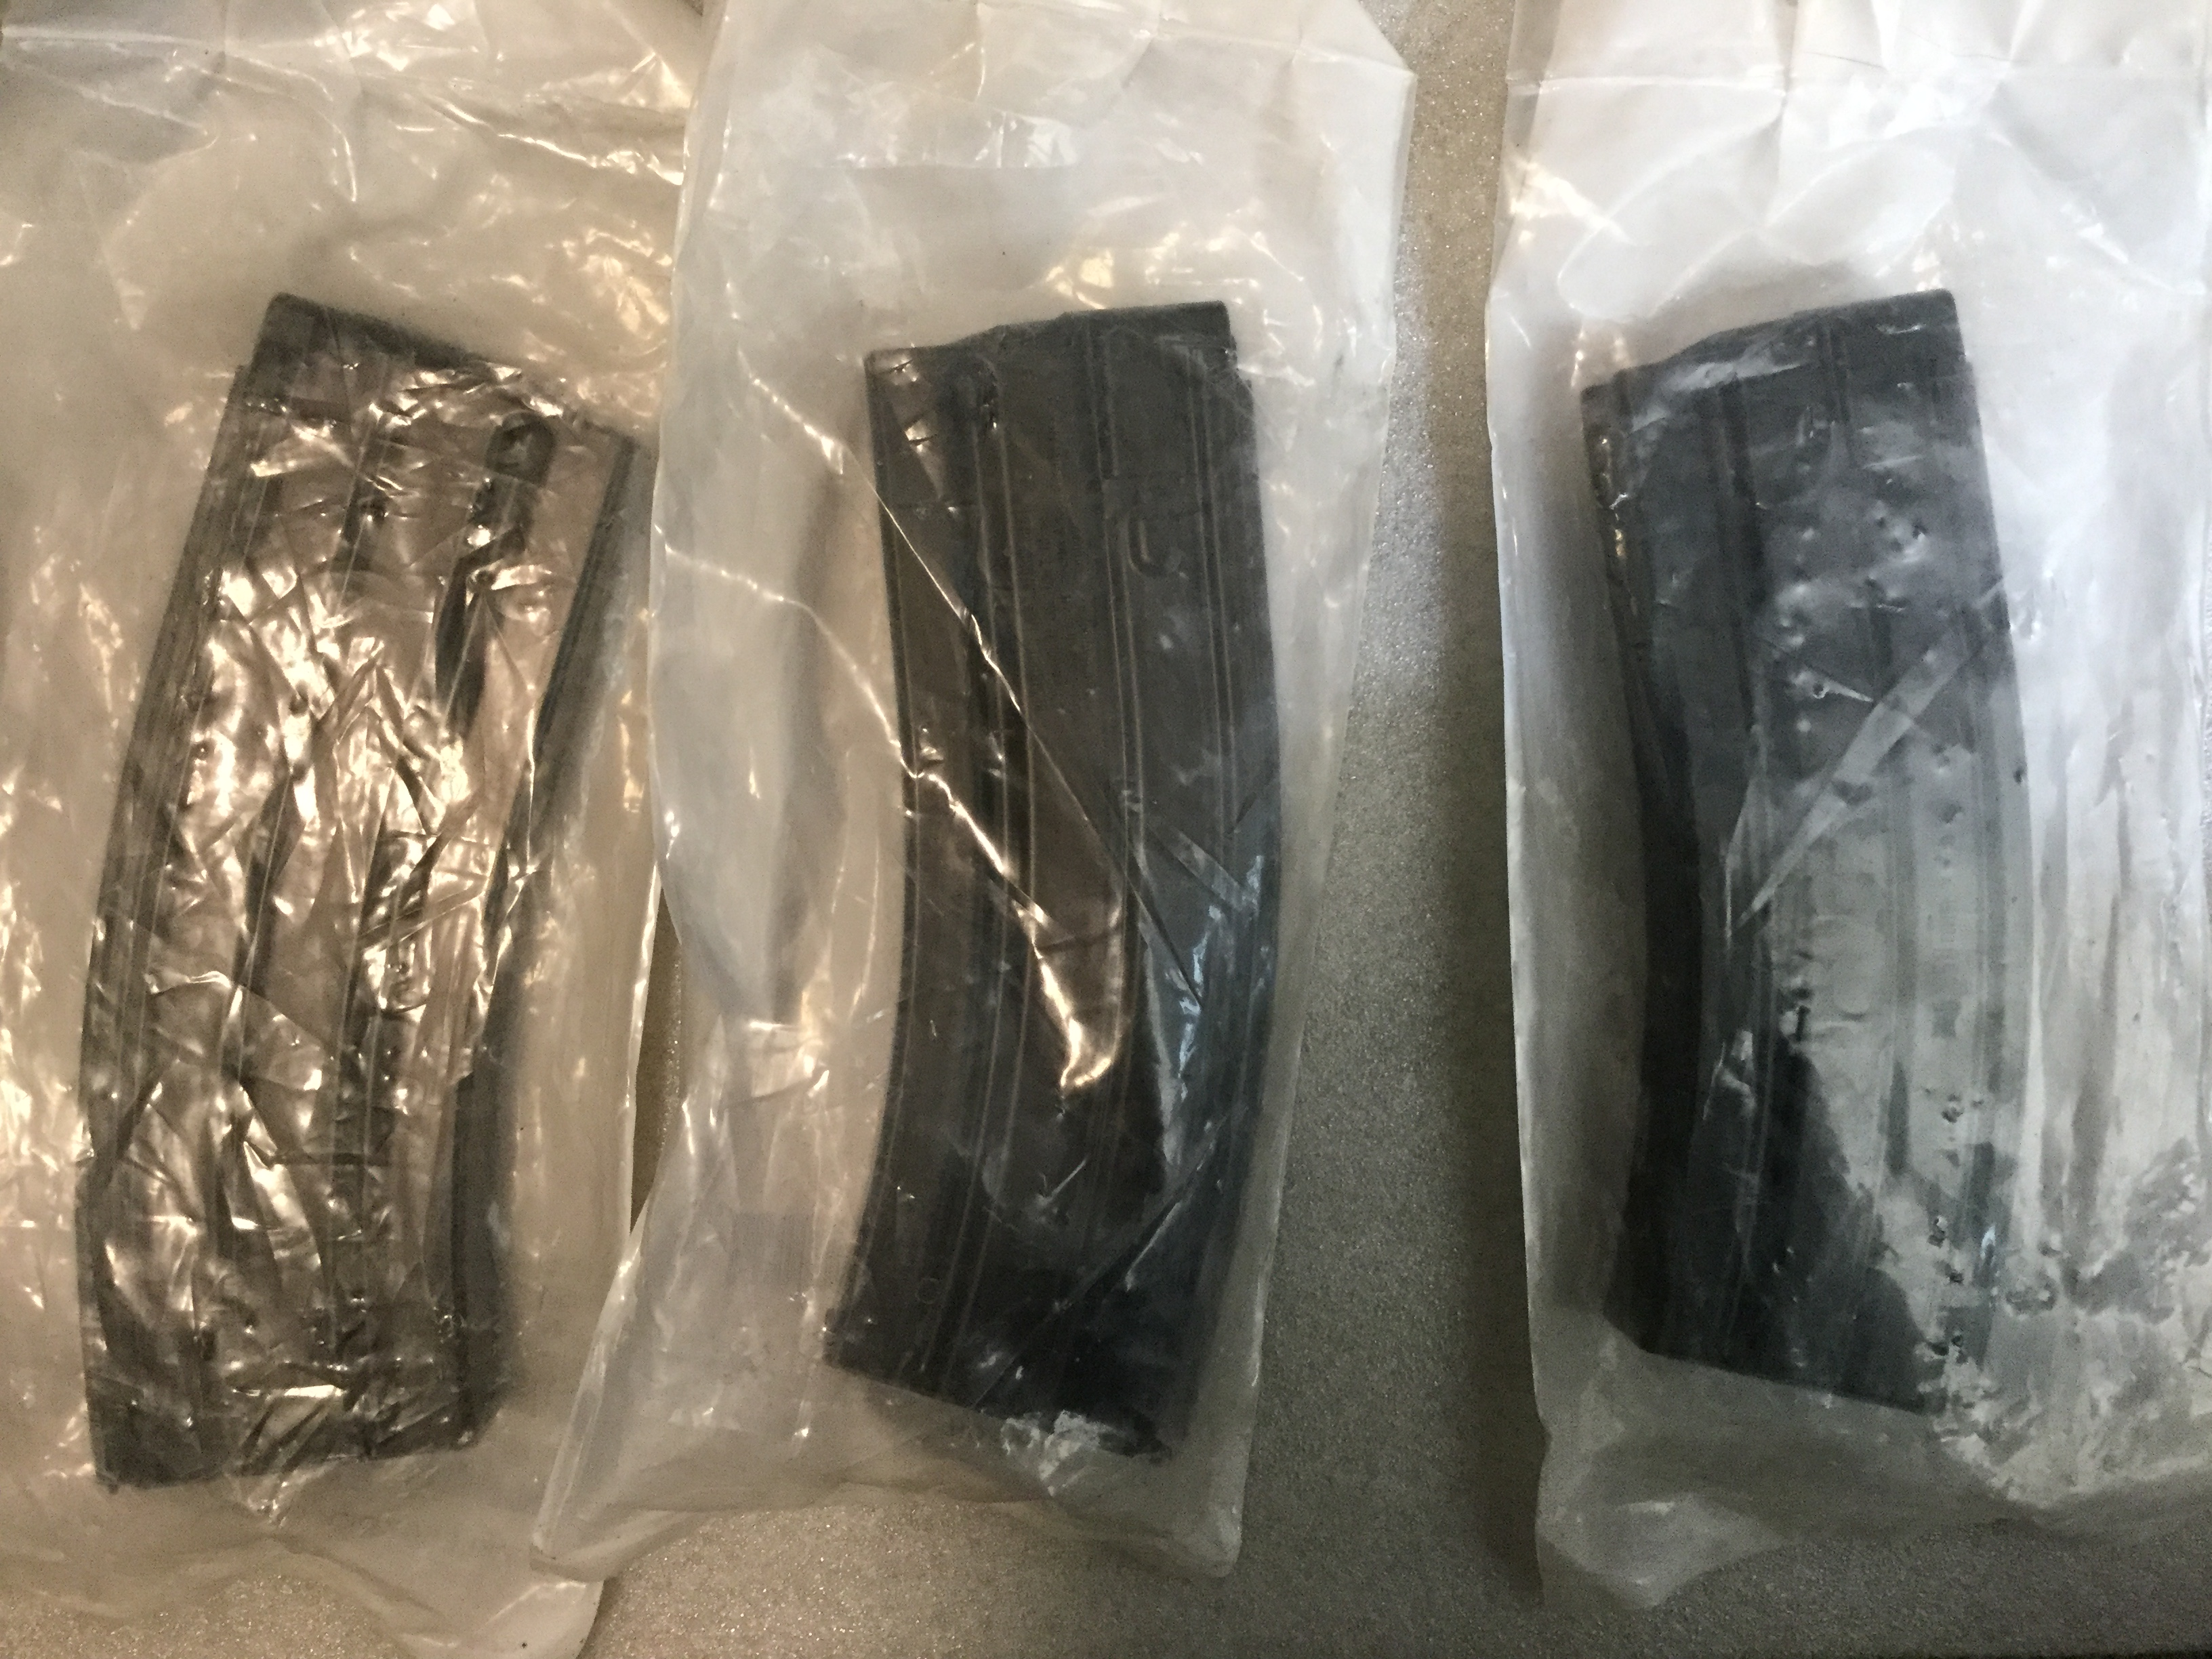 SOLD: NOS NIW HK factory Steel mags for HK MR 556/ HK 416 or any AR15-77449ccb-fd18-4258-9d4d-2a3bb0f5ecc5.jpeg